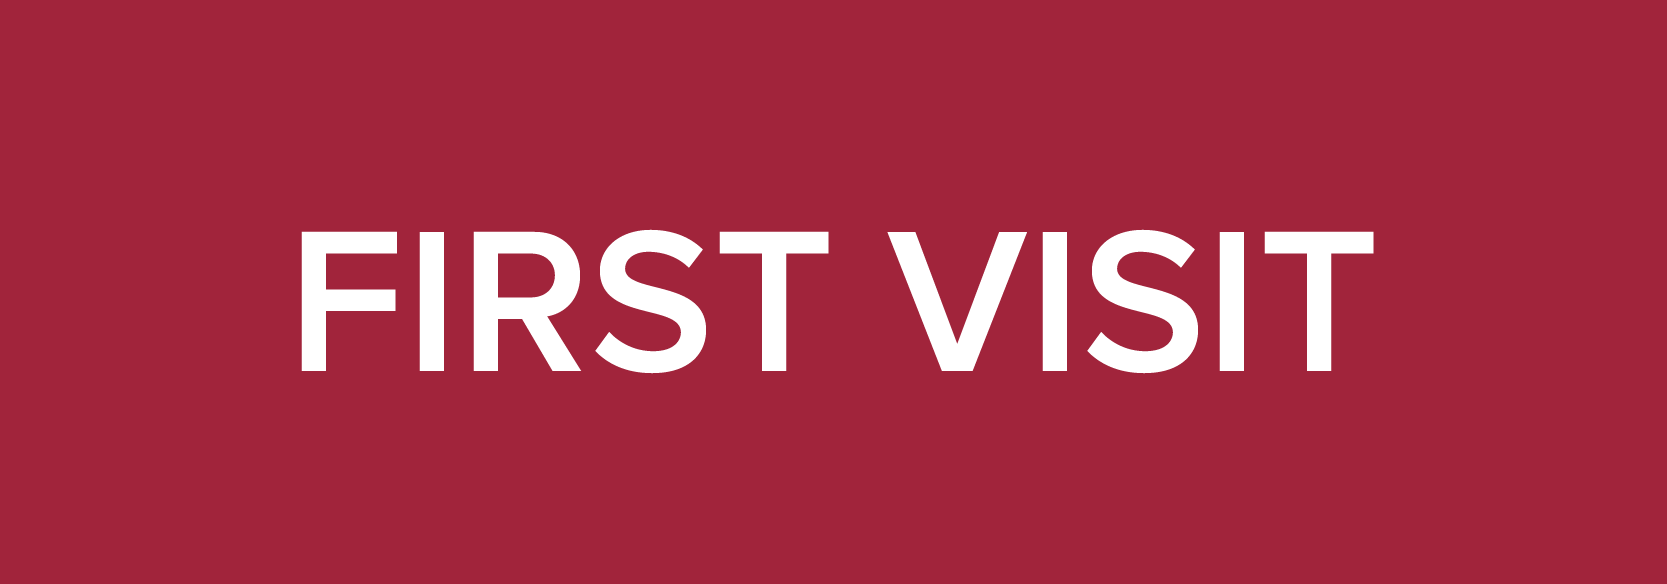 We at Willowbrook Cardiolovascular Associates want your first visit to go smoothly, so we have created this section to help make your office visit more efficient and streamlined. It's as easy as 1 - 2 - 3